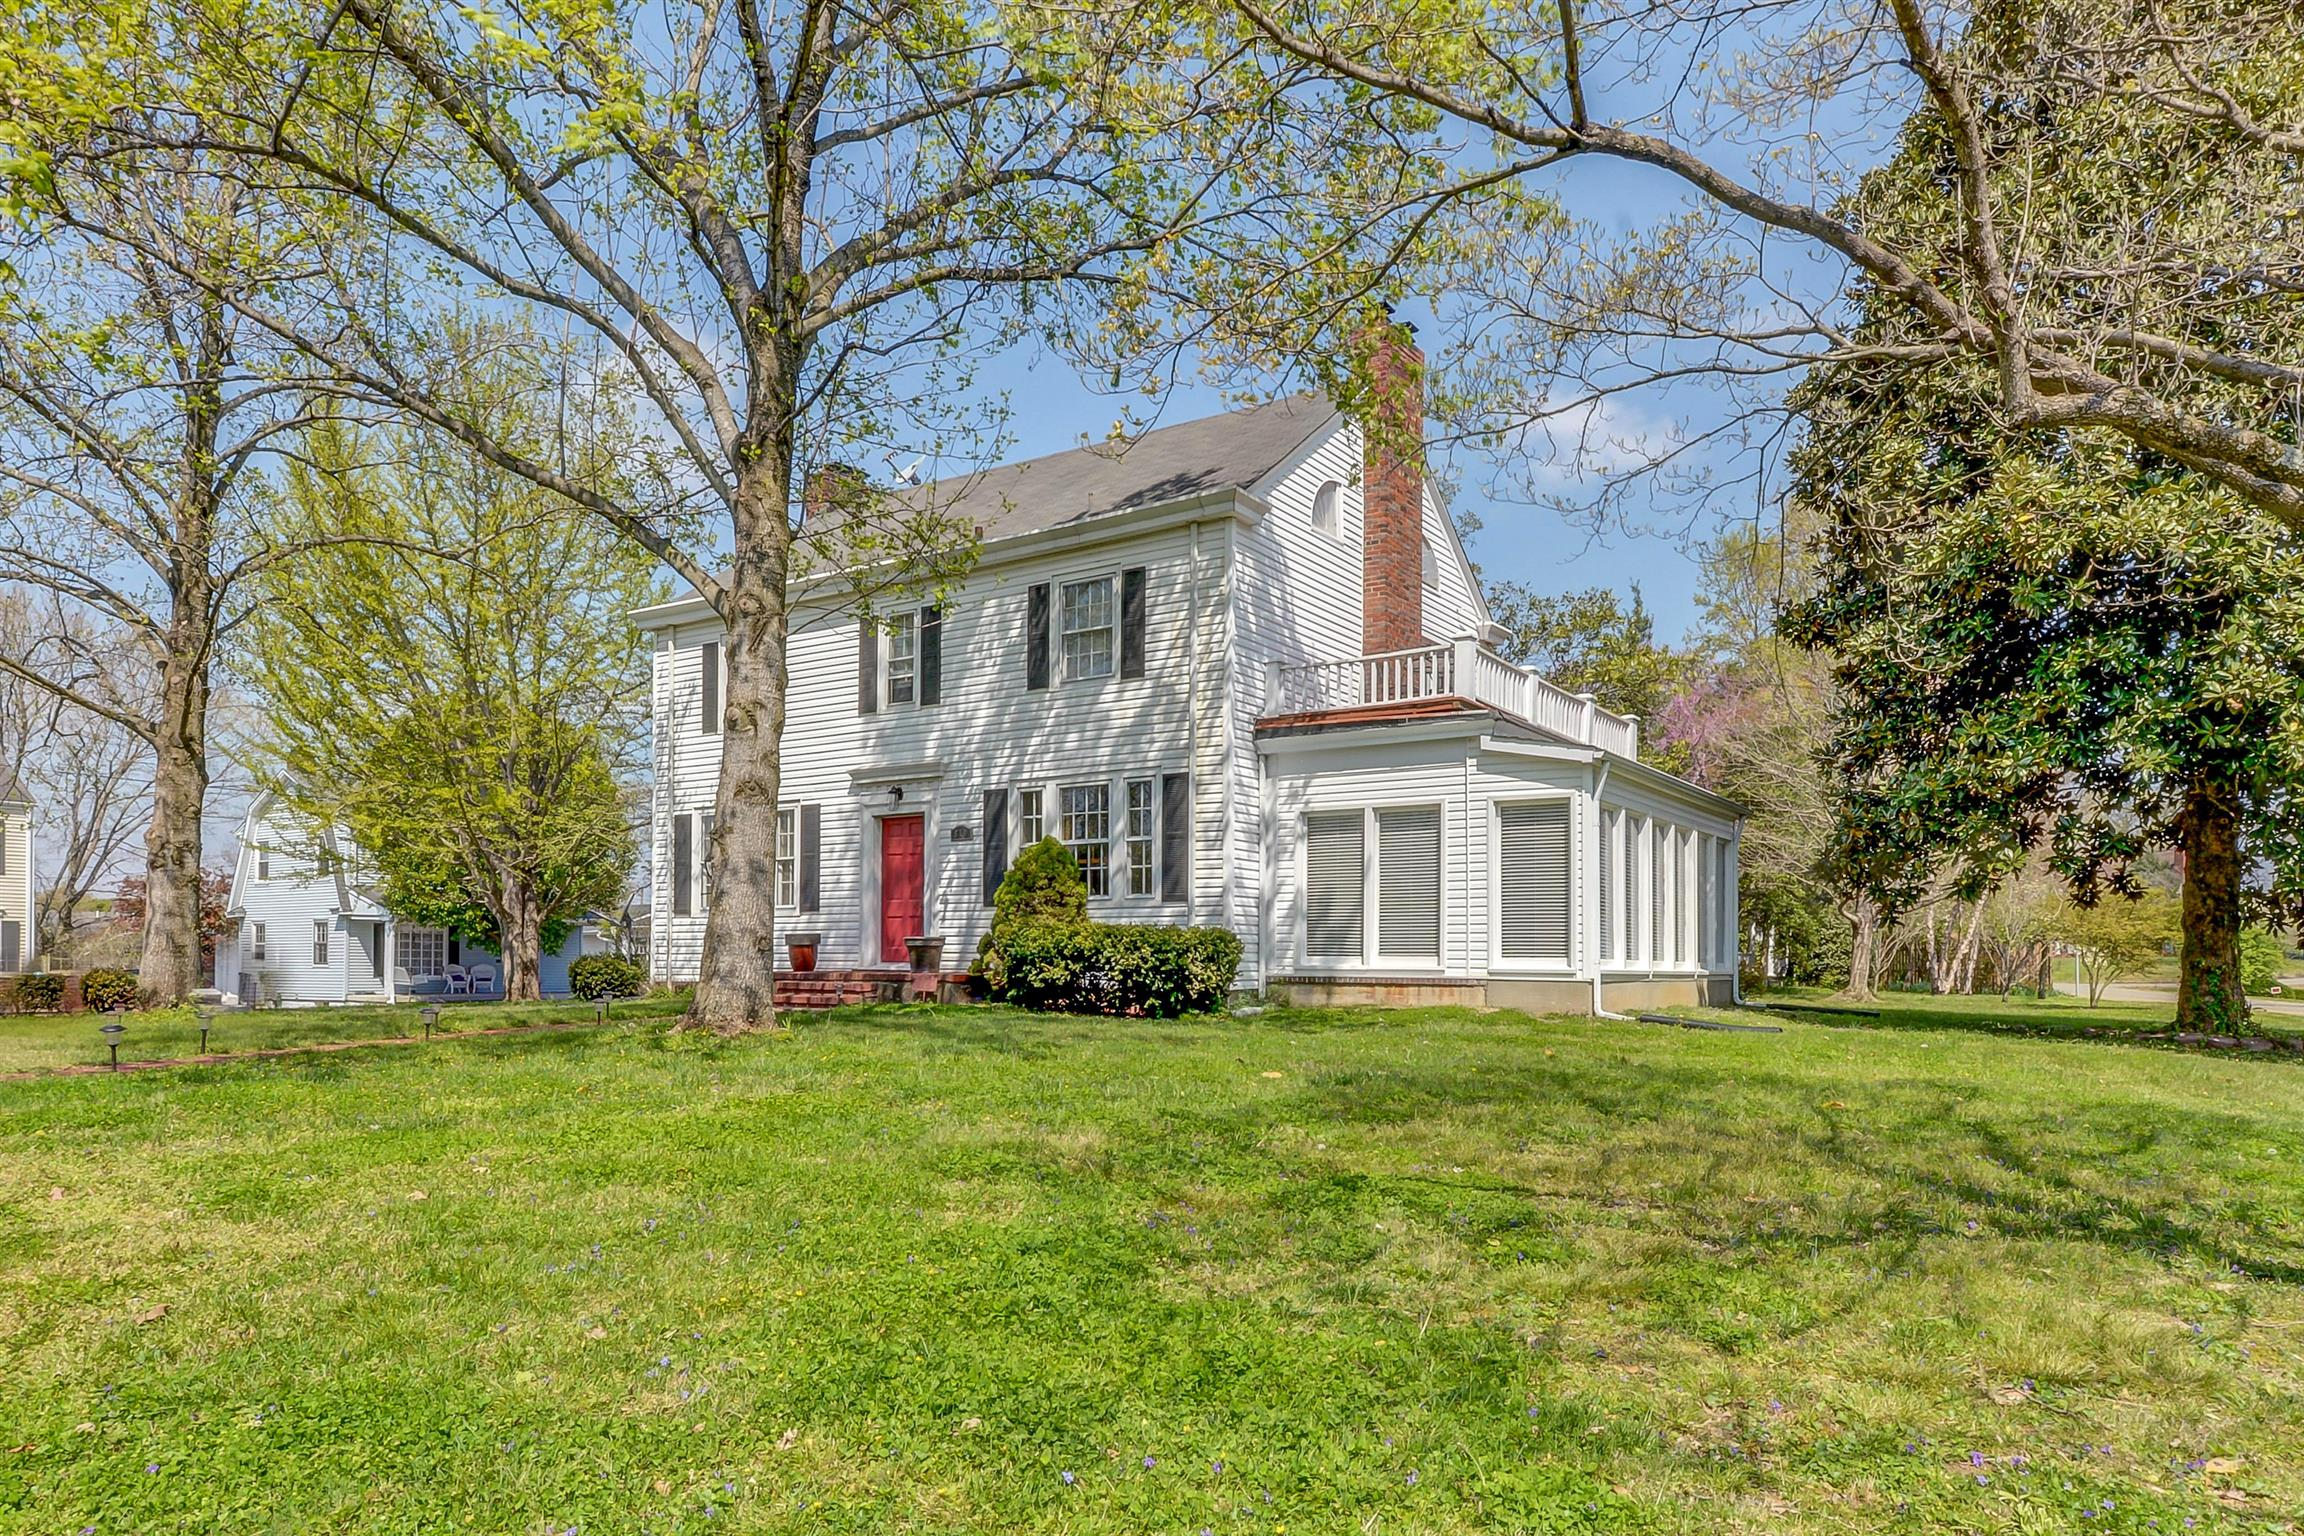 This 1930 Colonial is the ultimate in lovingly restored historic charm. Directly across from Old Hickory Lake with a sweeping view, this incredible 3-story home has updated kitchen, baths & more, without sacrificing historic character. Short walk to Marina, restaurants, trails, parks. Quiet community, easy commute to Nashville. Must see!!